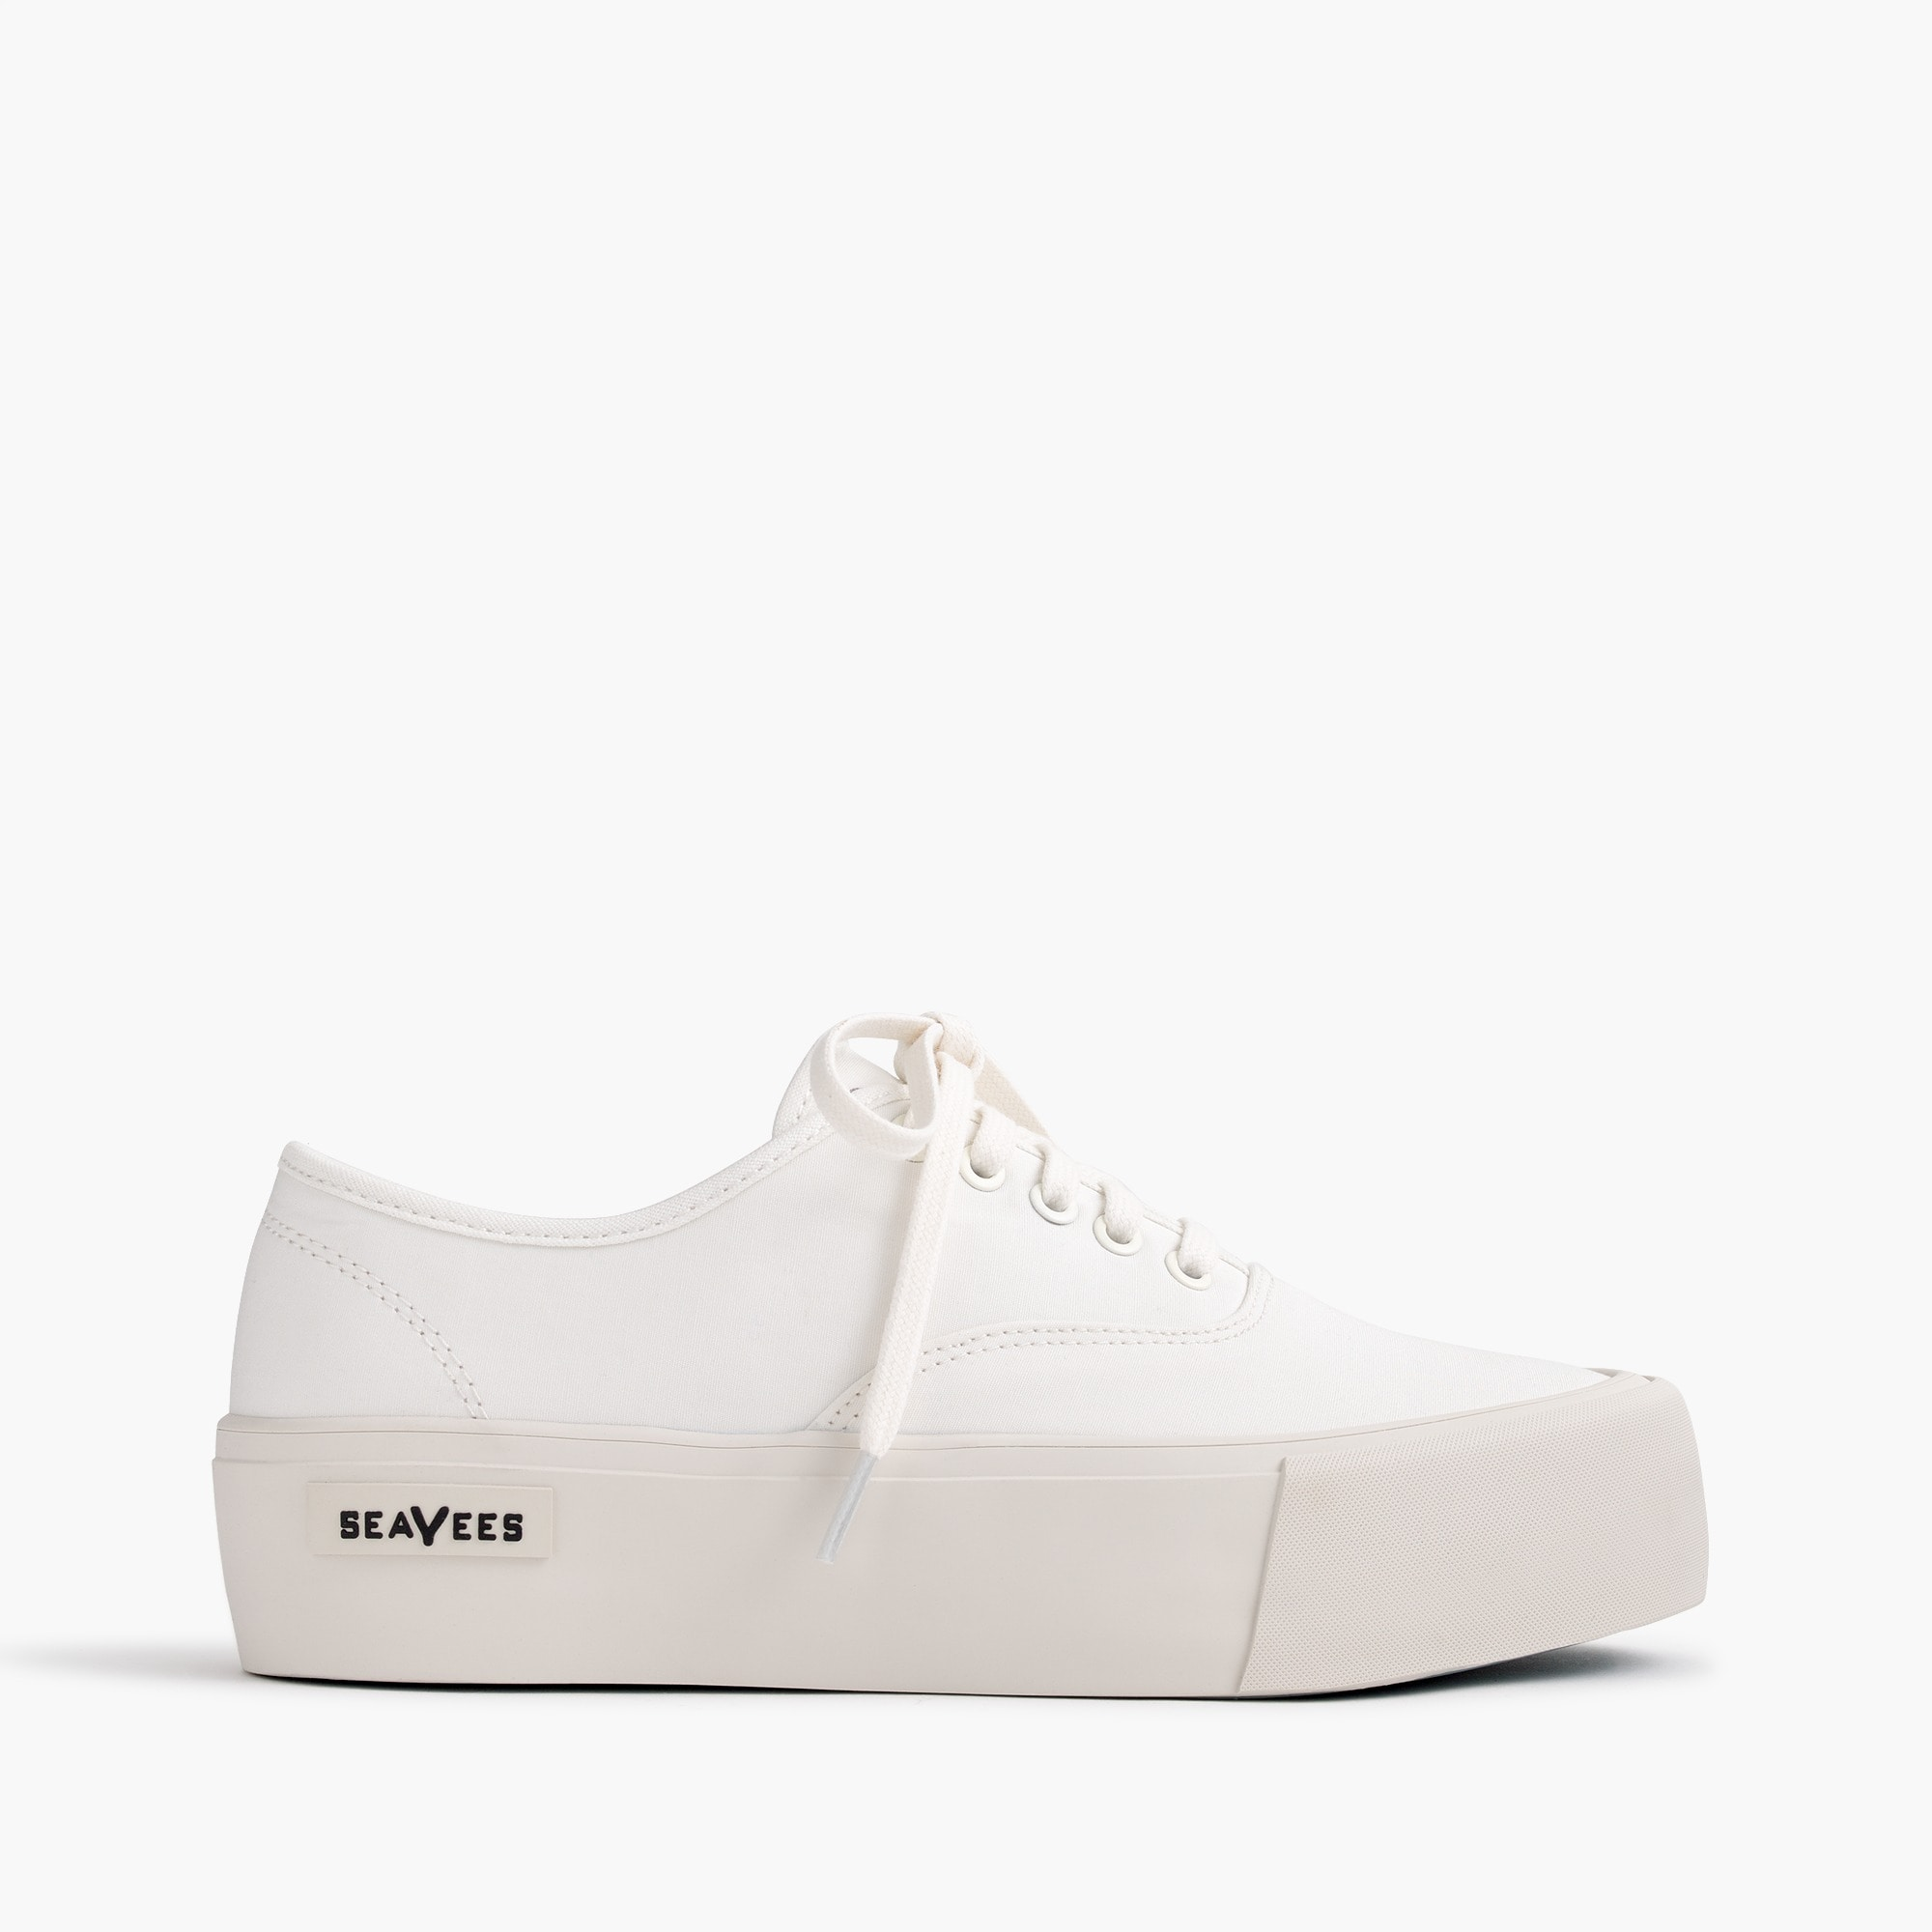 Image 2 for SeaVees® for J.Crew Legend platform sneakers